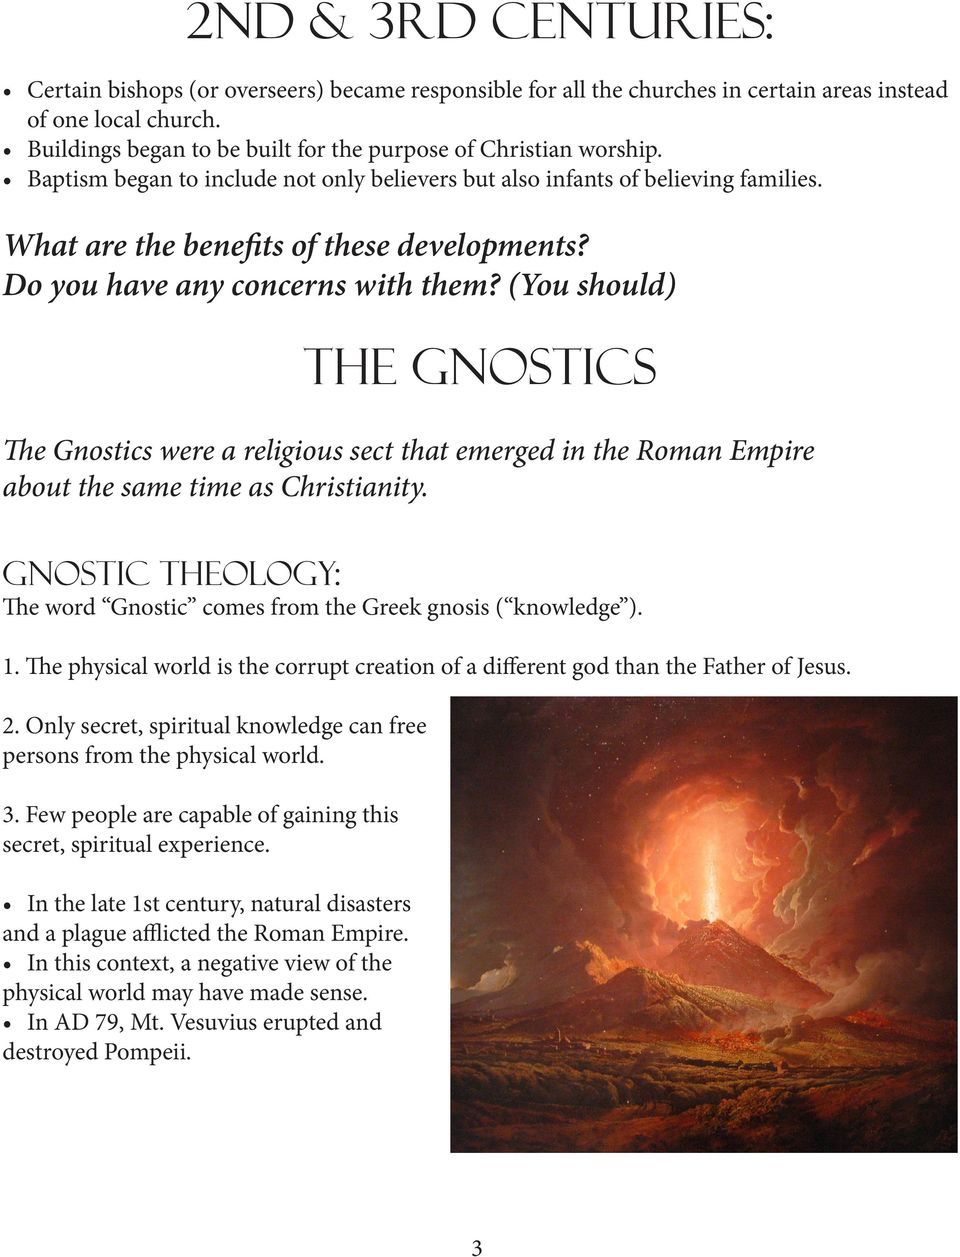 Do you have any concerns with them? (You should) The GNostics The Gnostics were a religious sect that emerged in the Roman Empire about the same time as Christianity.